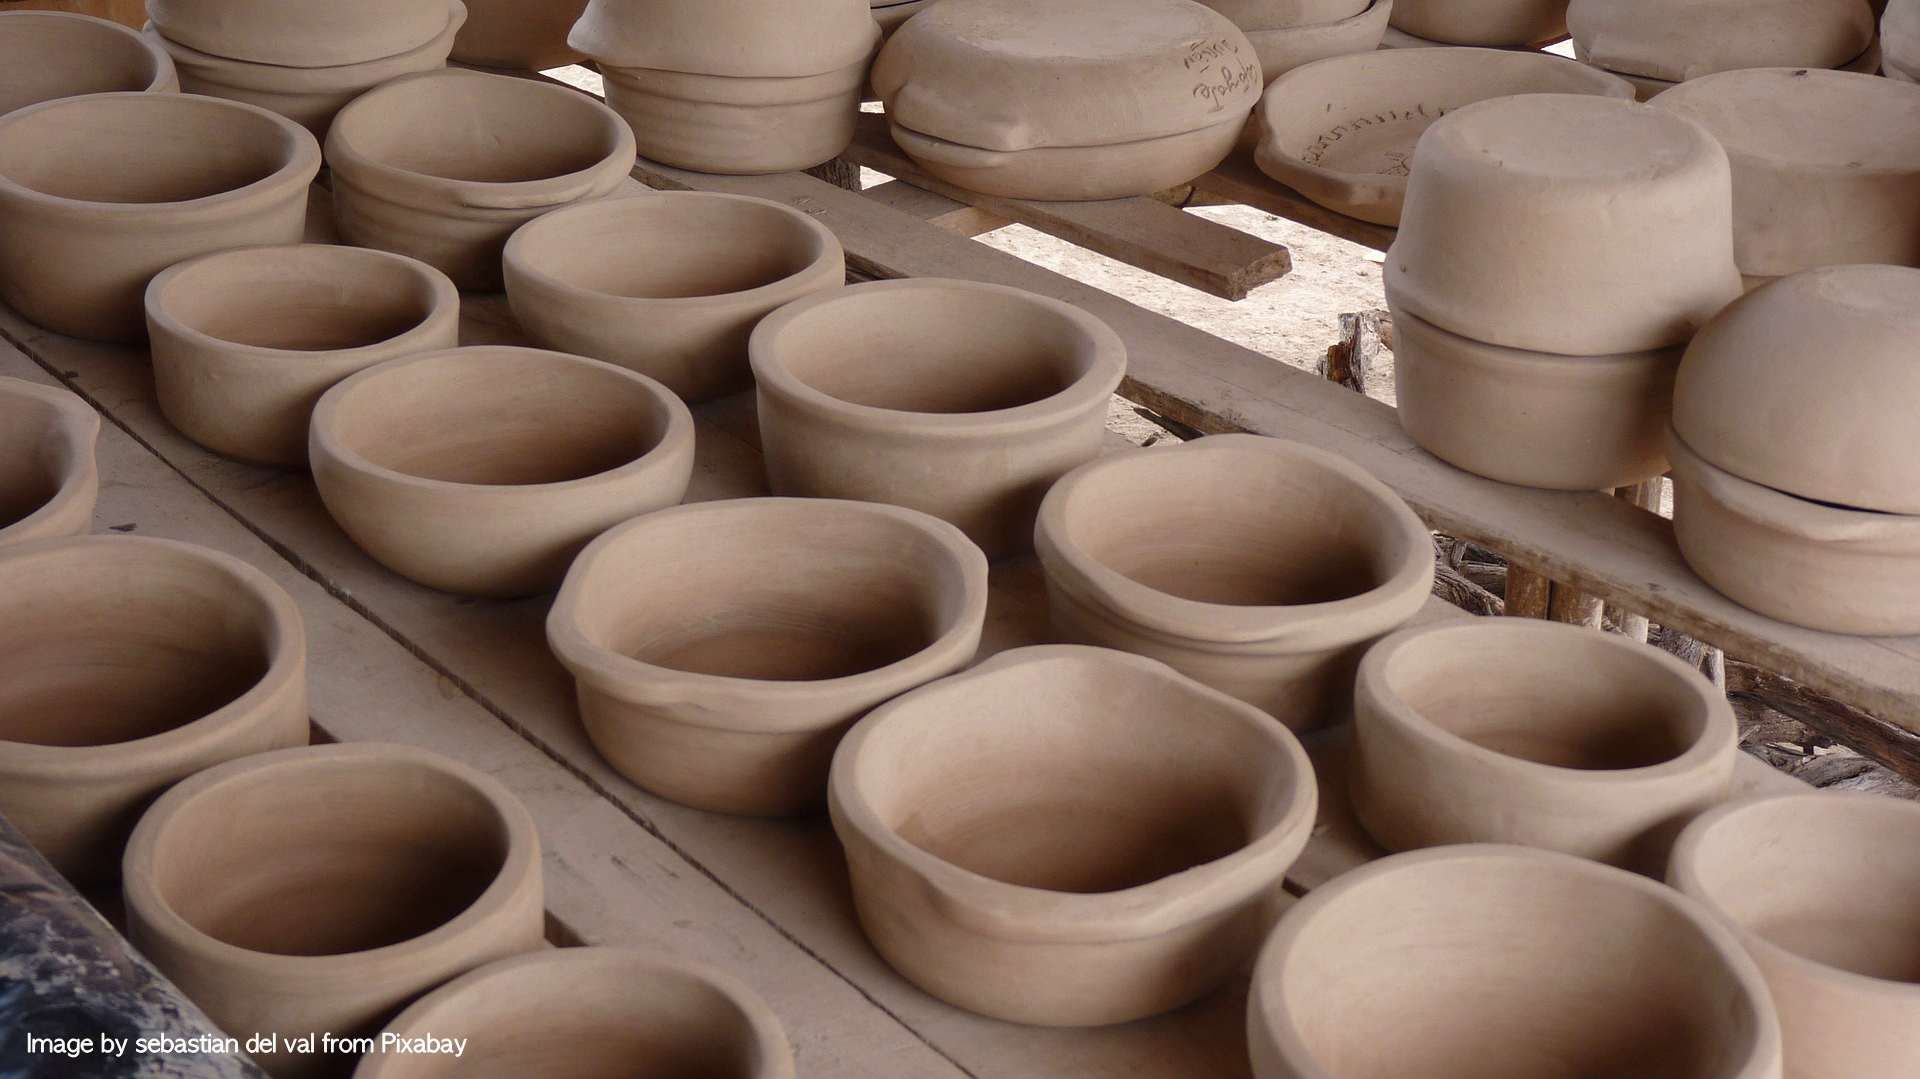 clay pots of all sizes serve as containers to create a fulfilling life